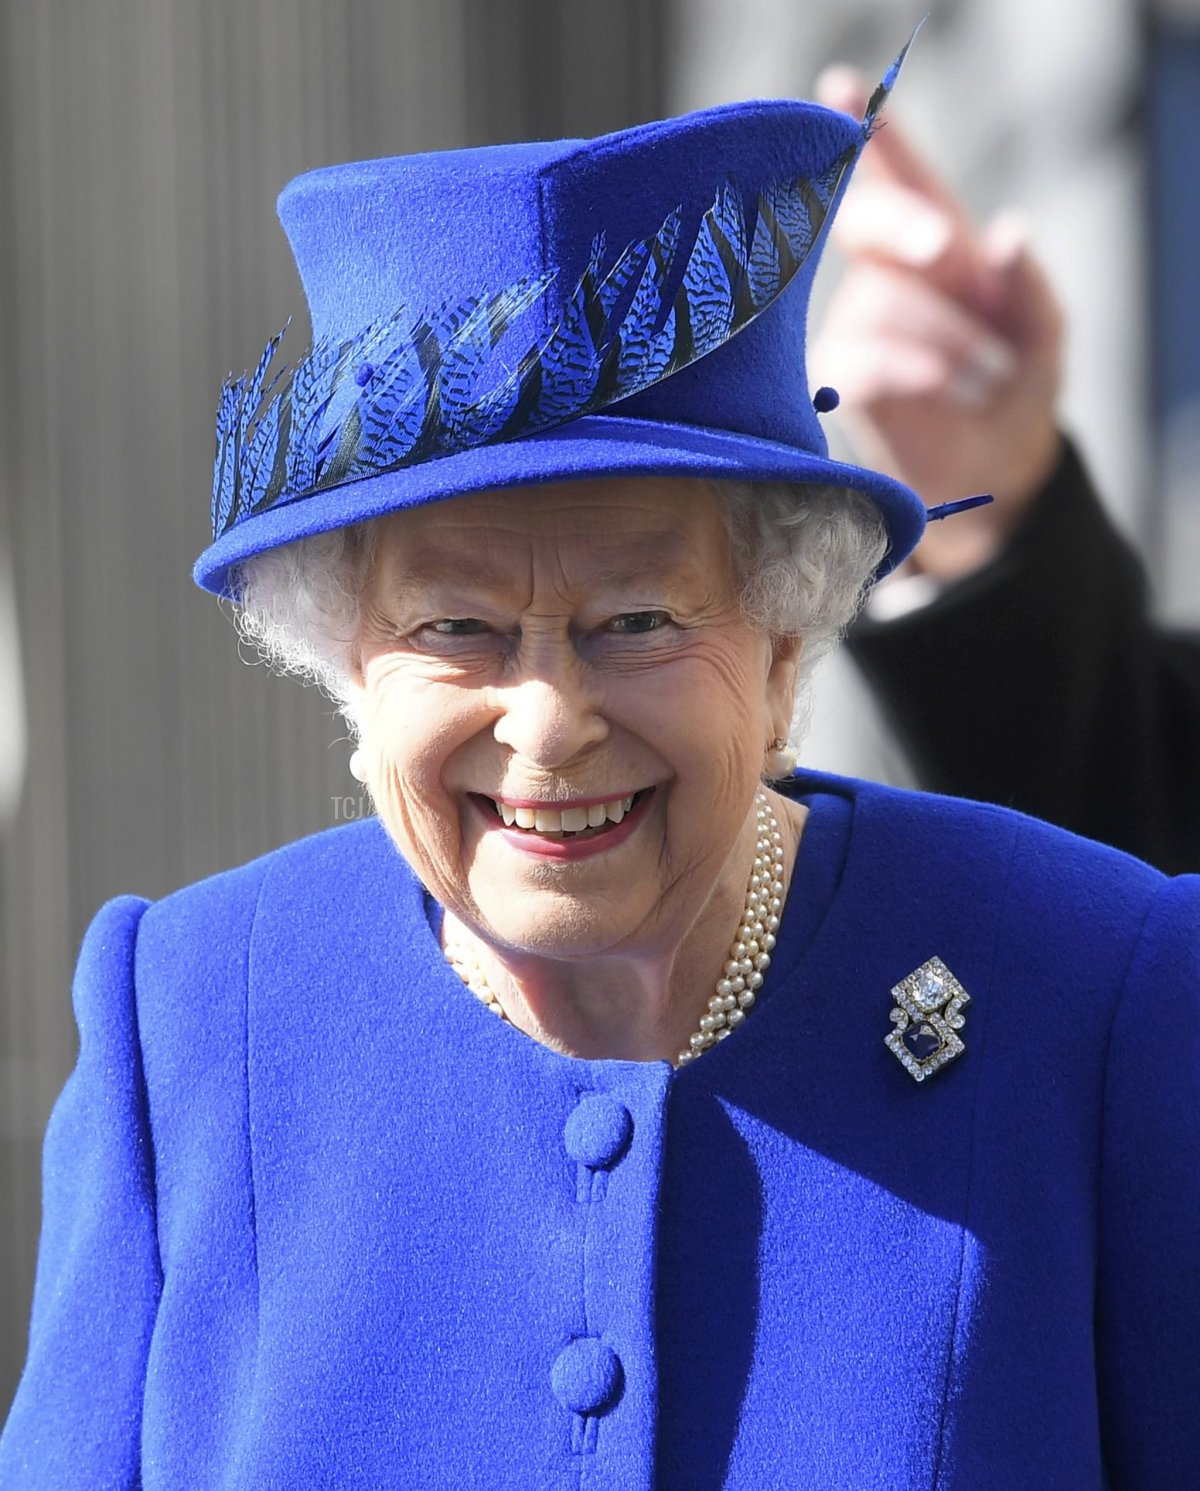 Queen Elizabeth II arrives with flowers for the unveiling of the new memorial to members of the armed services who served and died in the wars in Iraq and Afghanistan at Victoria Embankment Gardens on March 8, 2017 in London, England